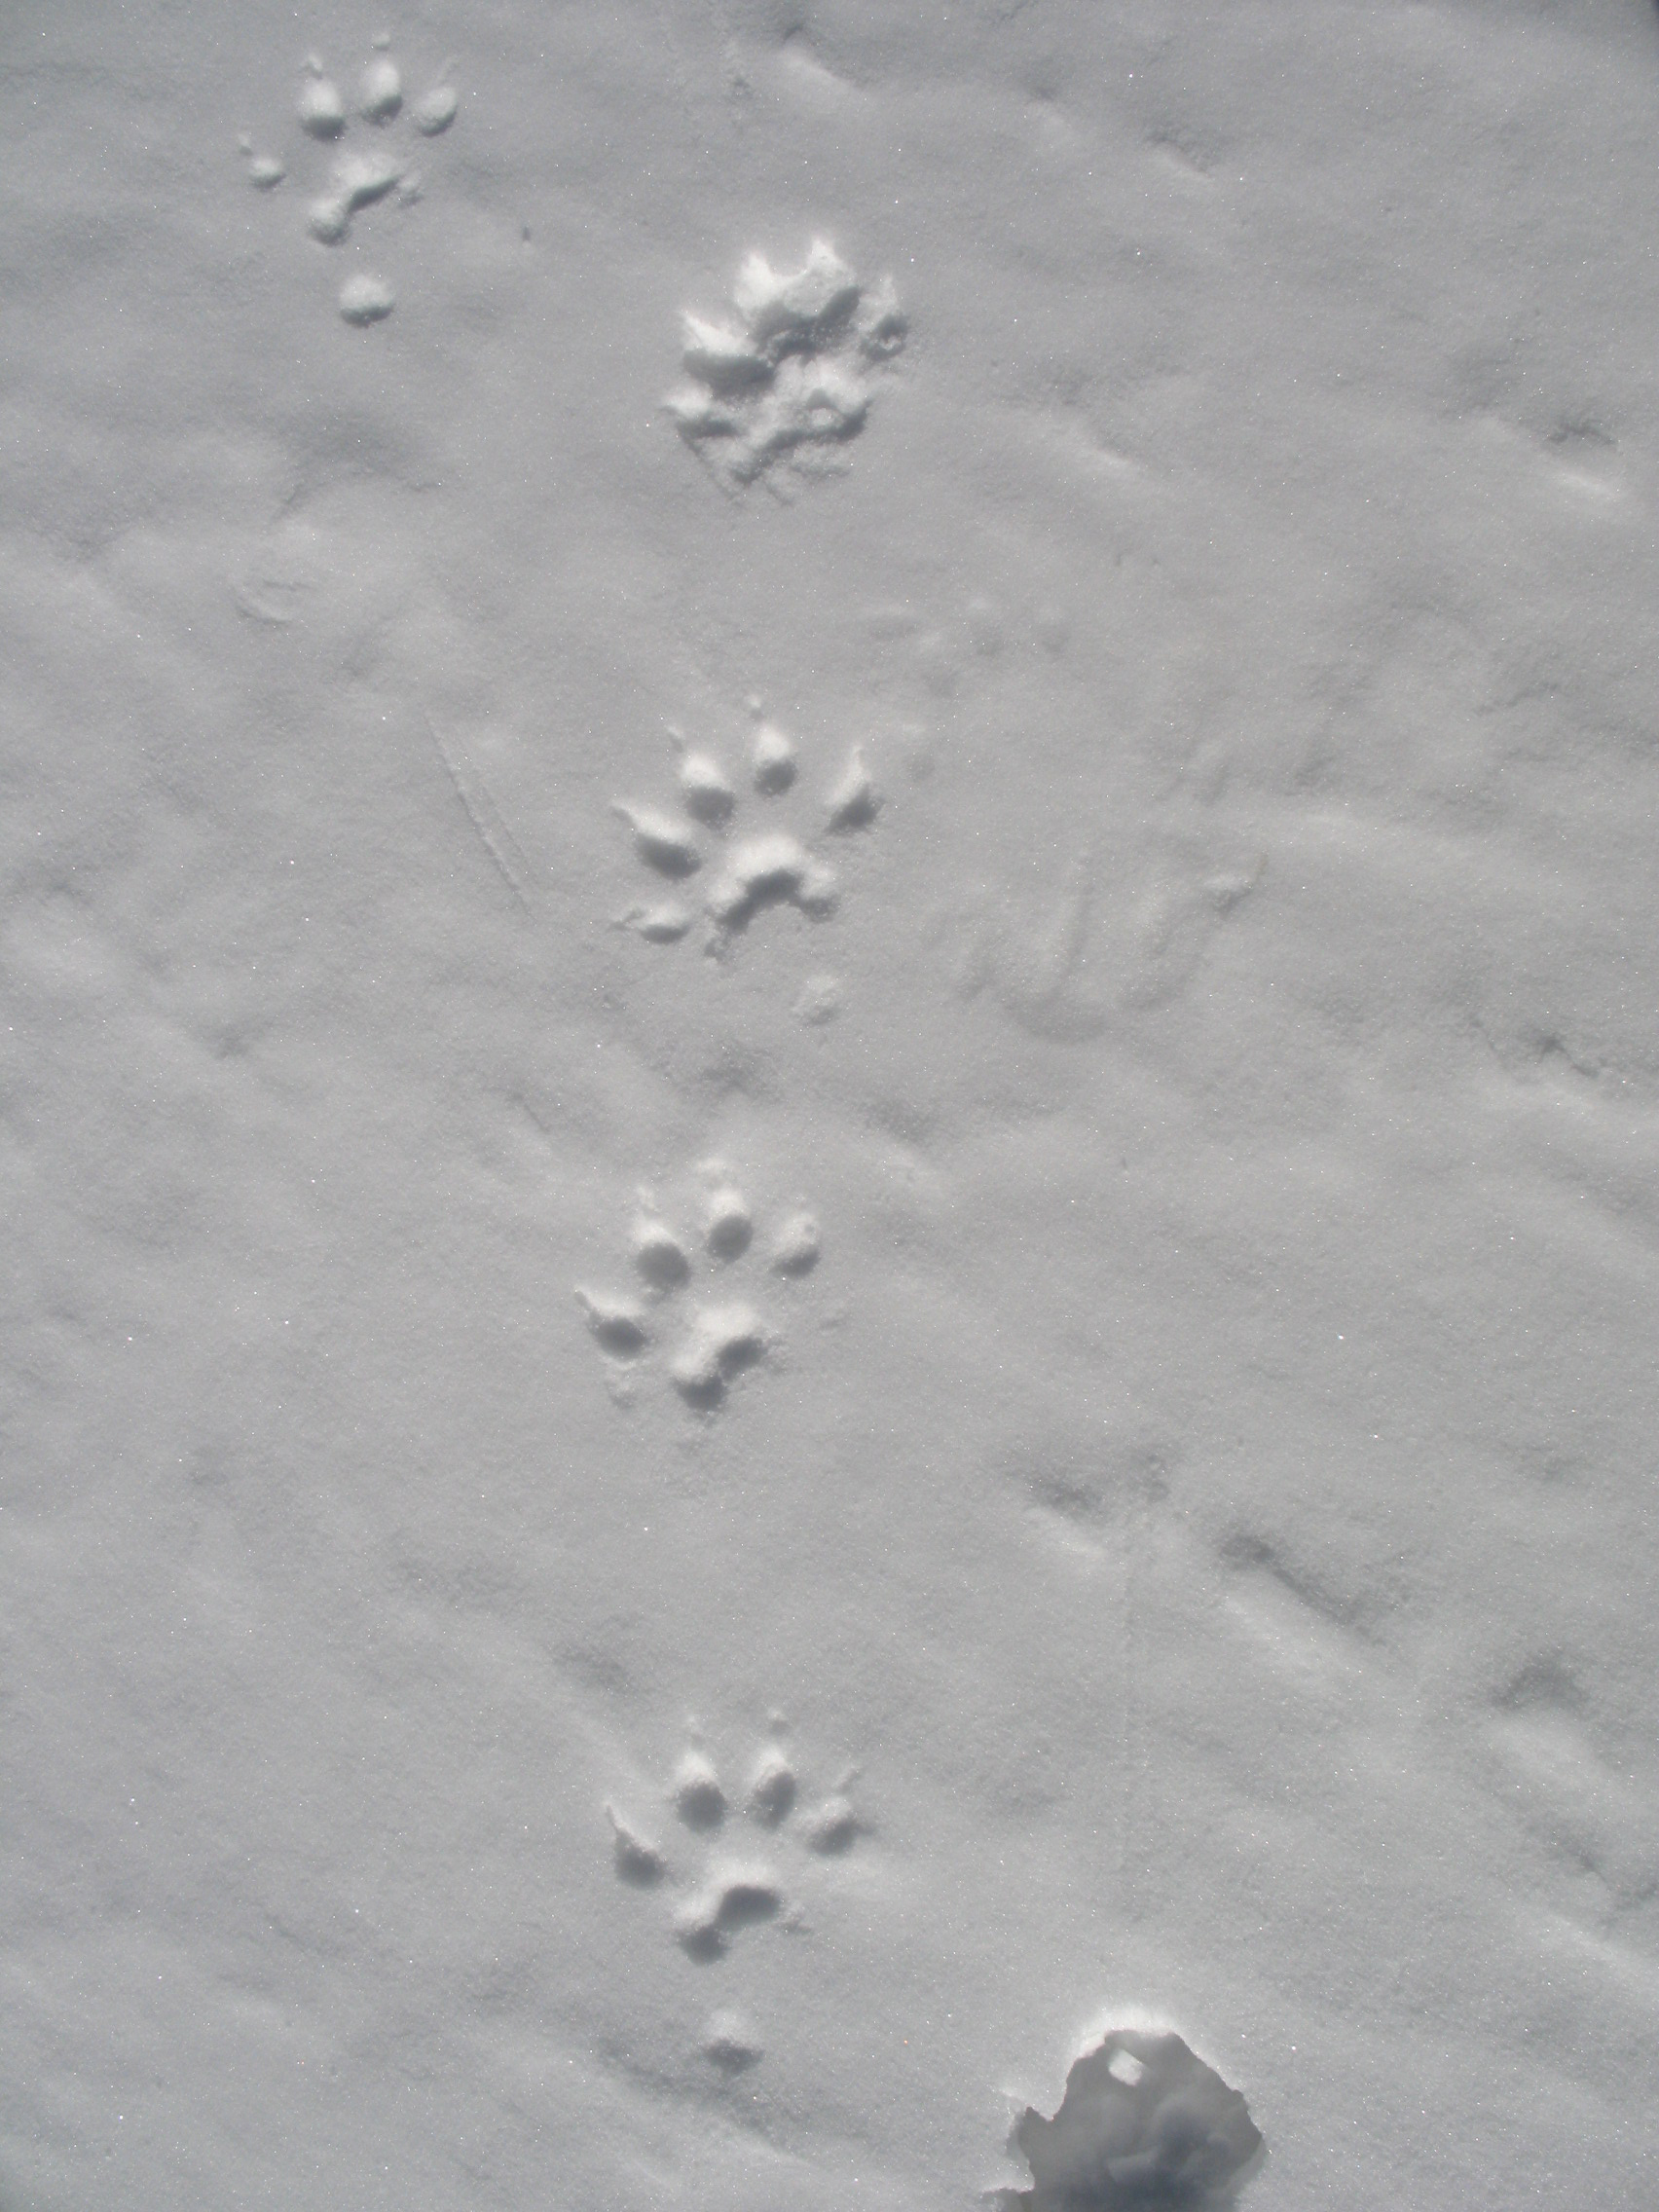 Tracks of a wolverine in snow